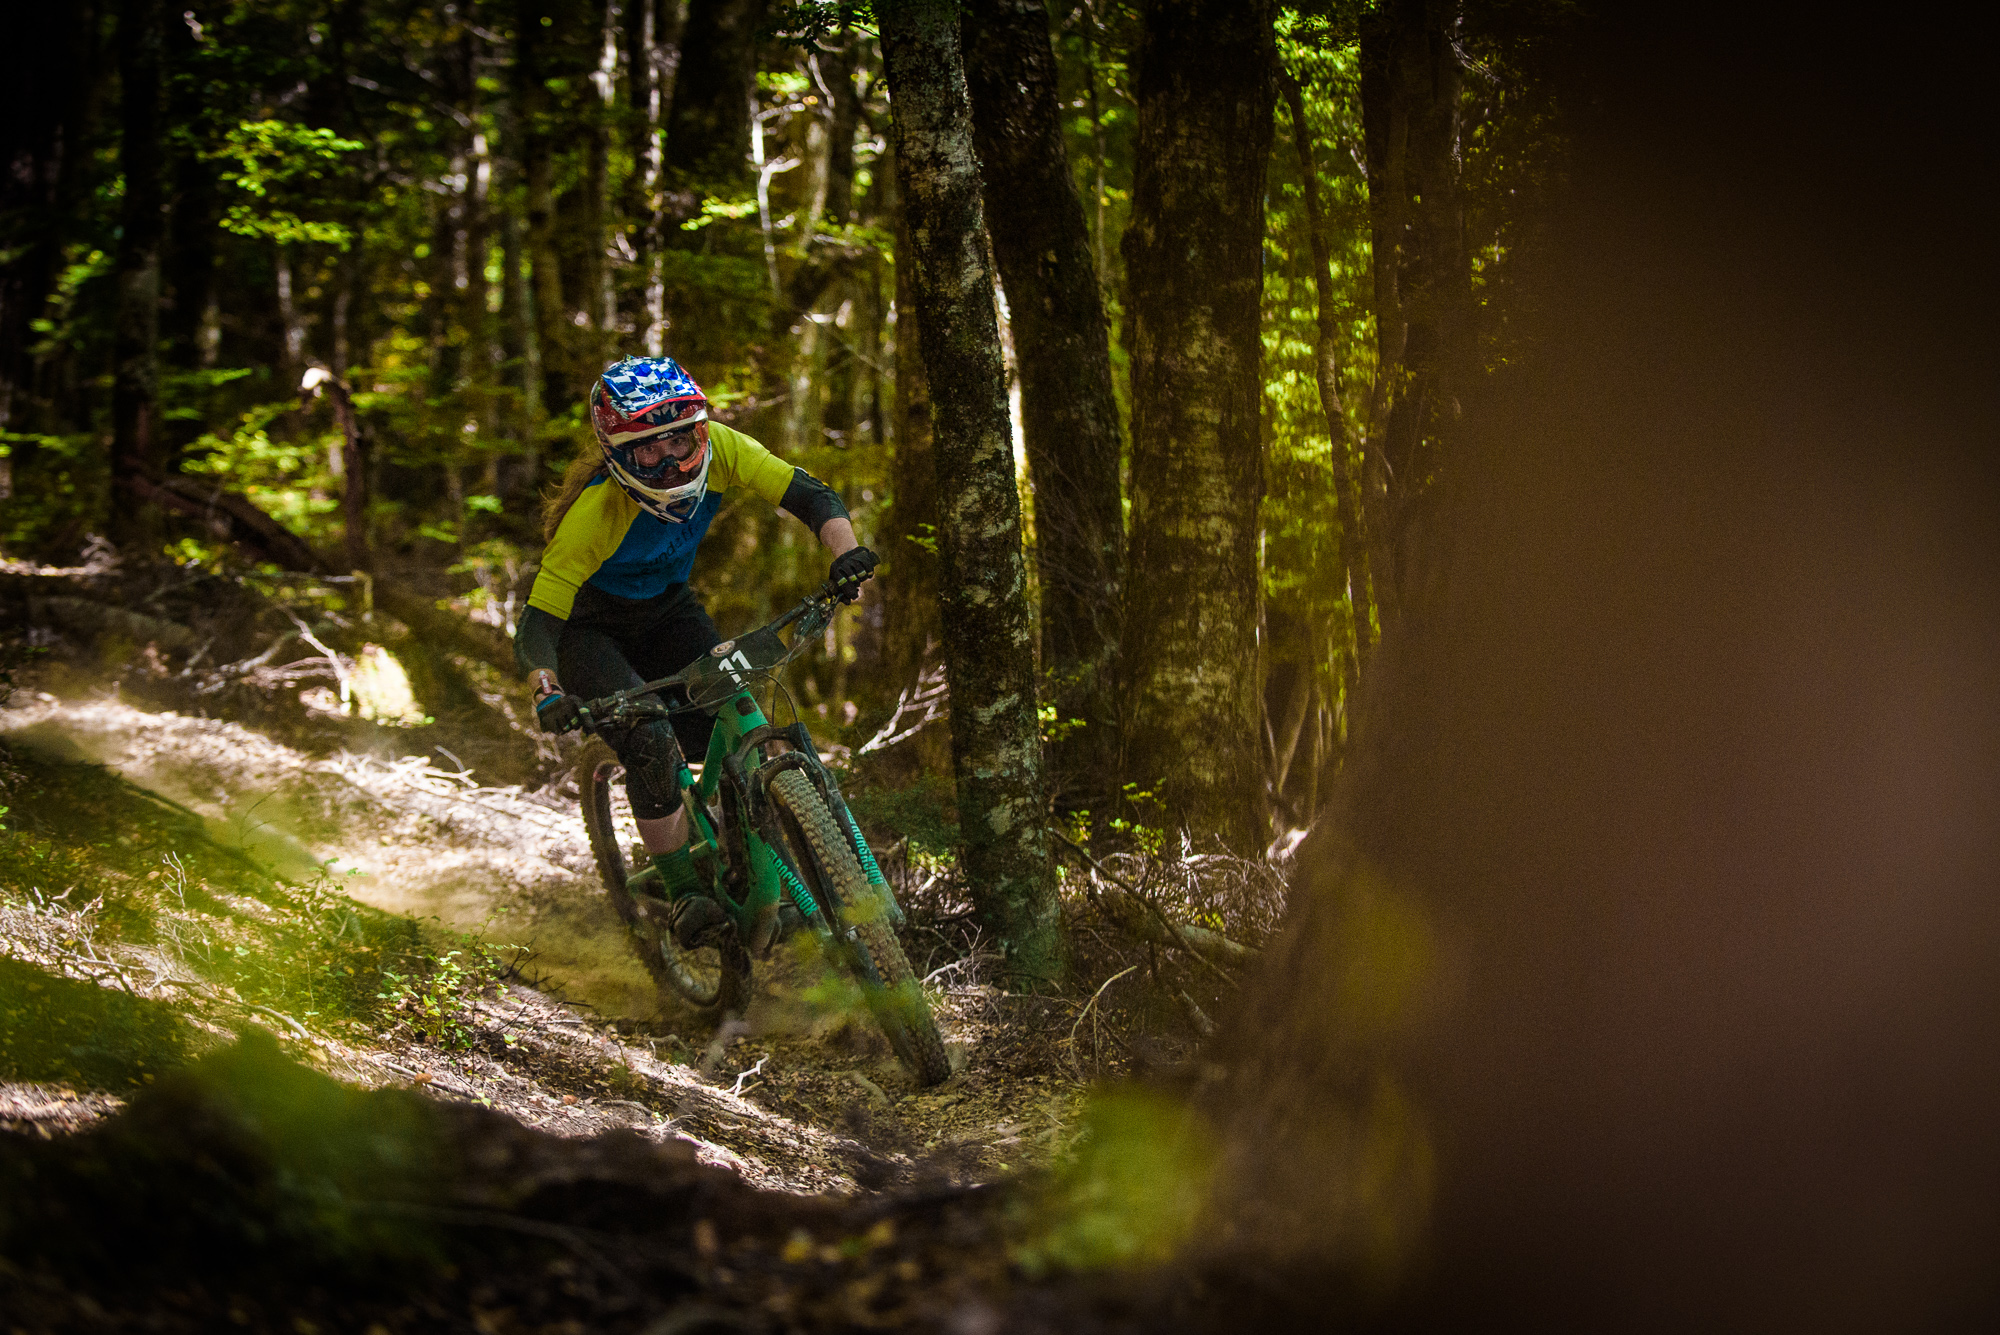 Anja McDonald was getting after it, going quick enough for second in the women's field. Photo: Digby Shaw.